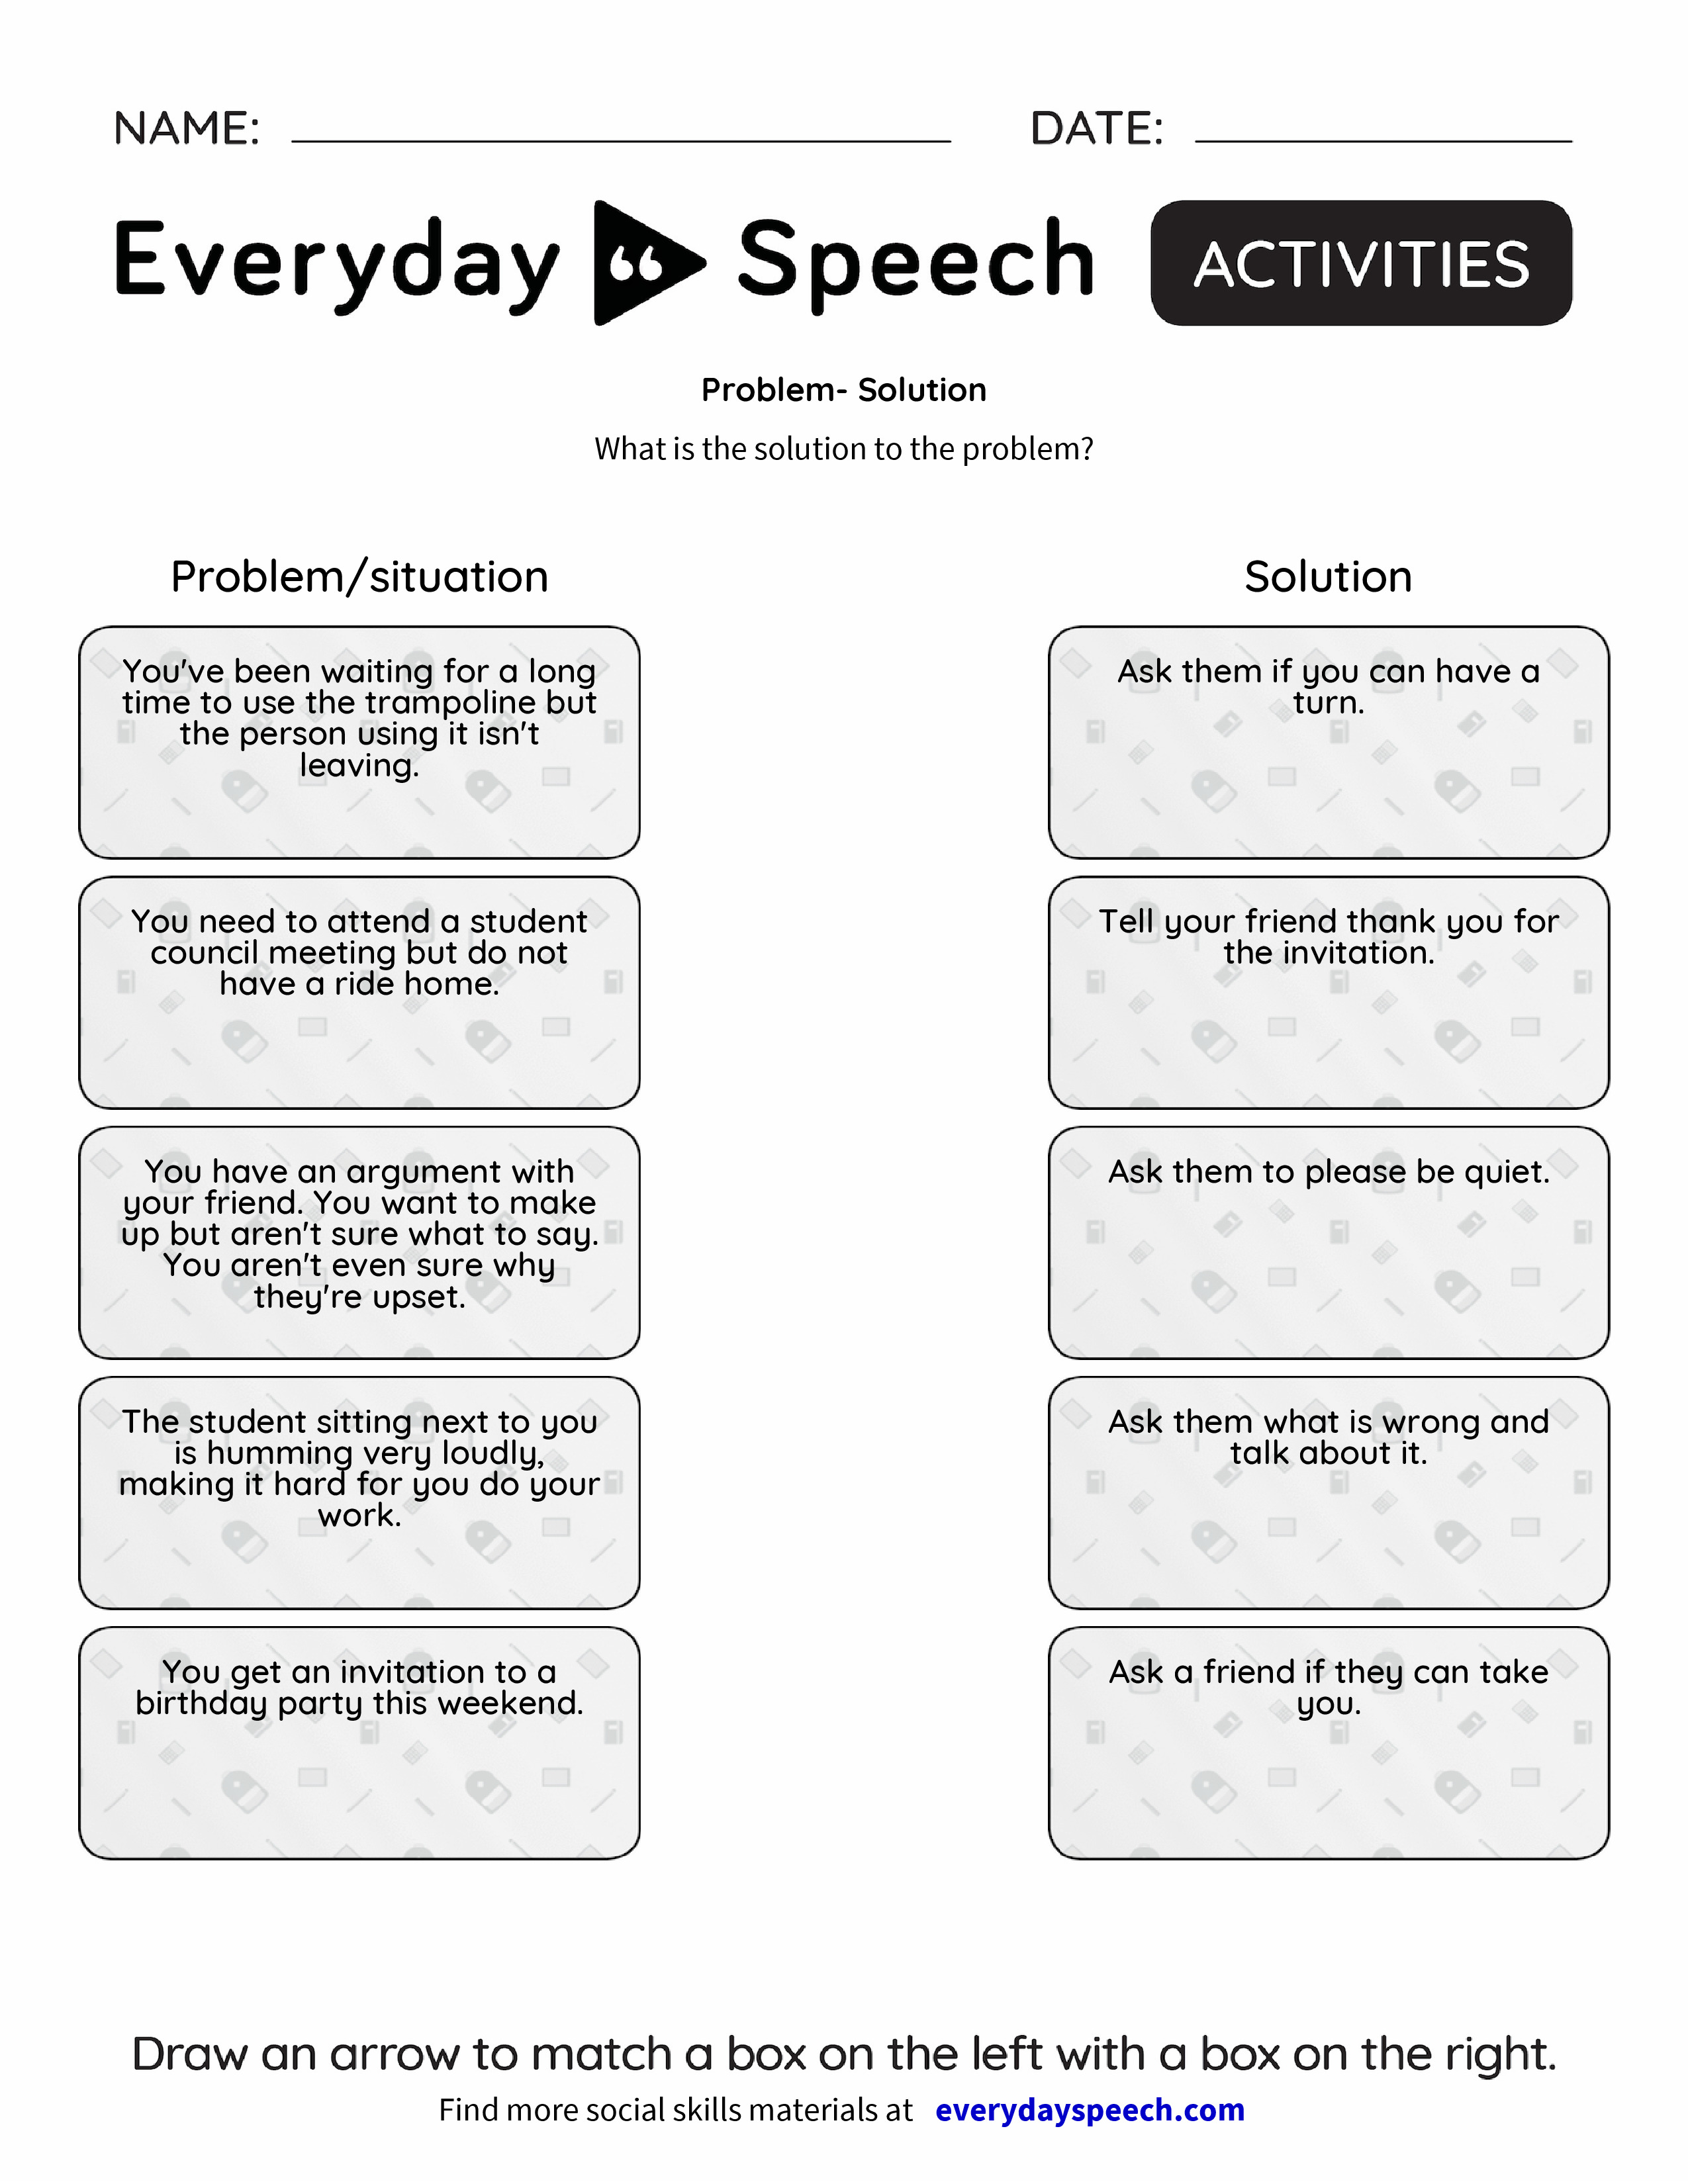 Worksheets Problem And Solution Worksheets problem solution everyday speech preview preview